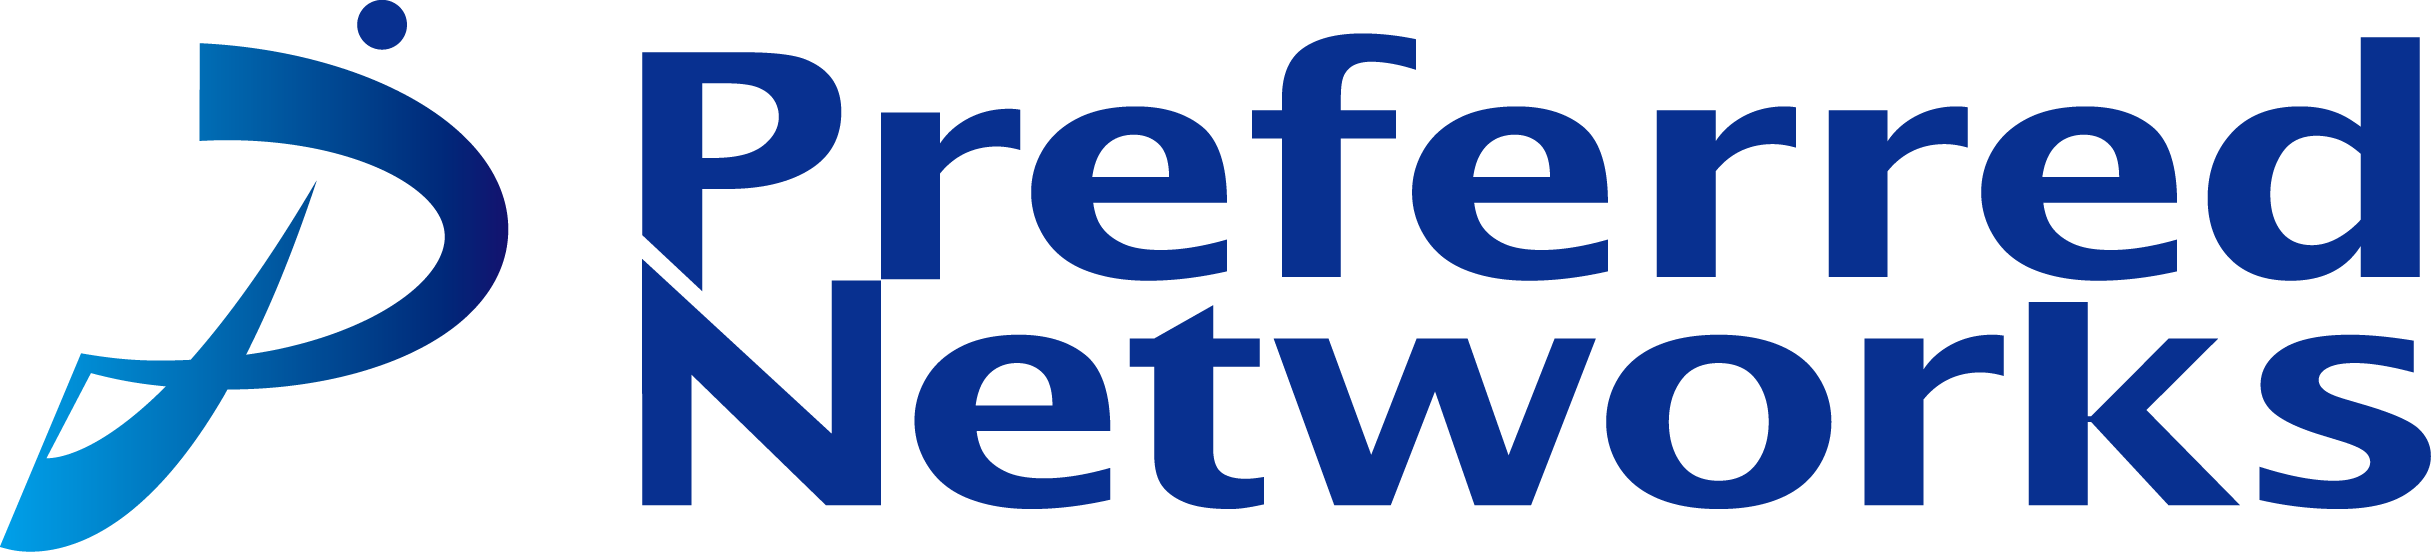 株式会社 Preferred Networks